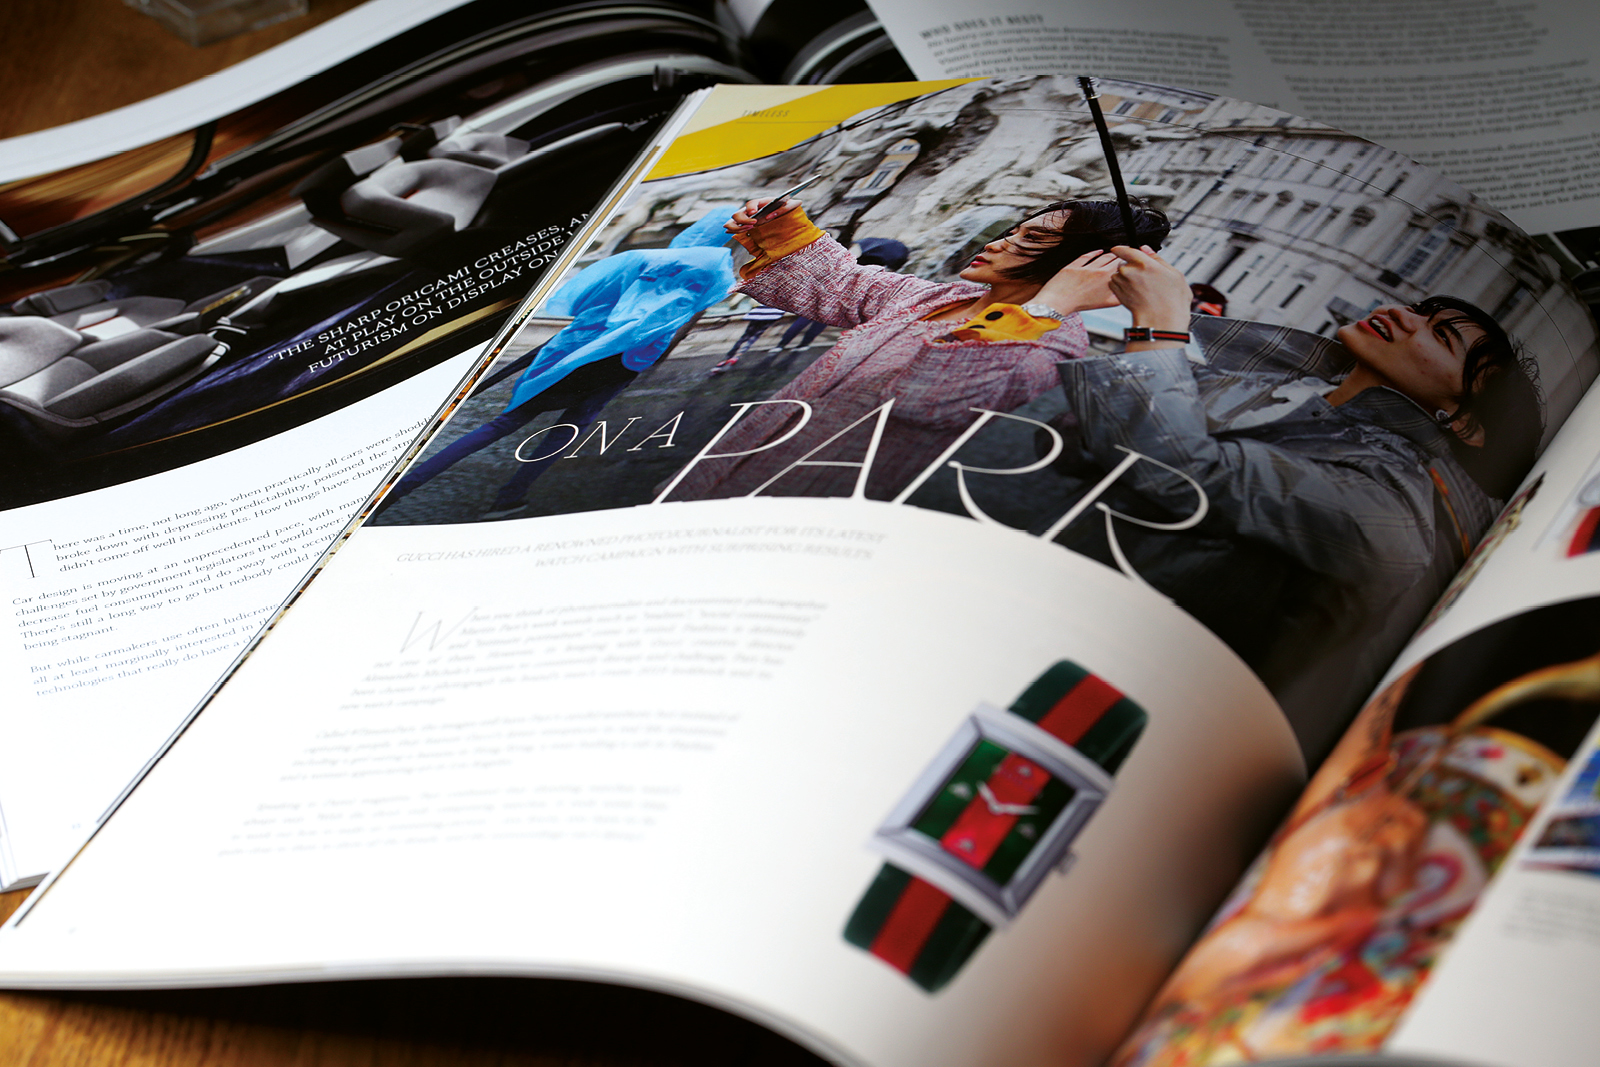 Timeless Magazine: Issue 7. Design, production and publishing of the luxury lifestyle customer magazine for Finnies the Jeweller, Aberdeen